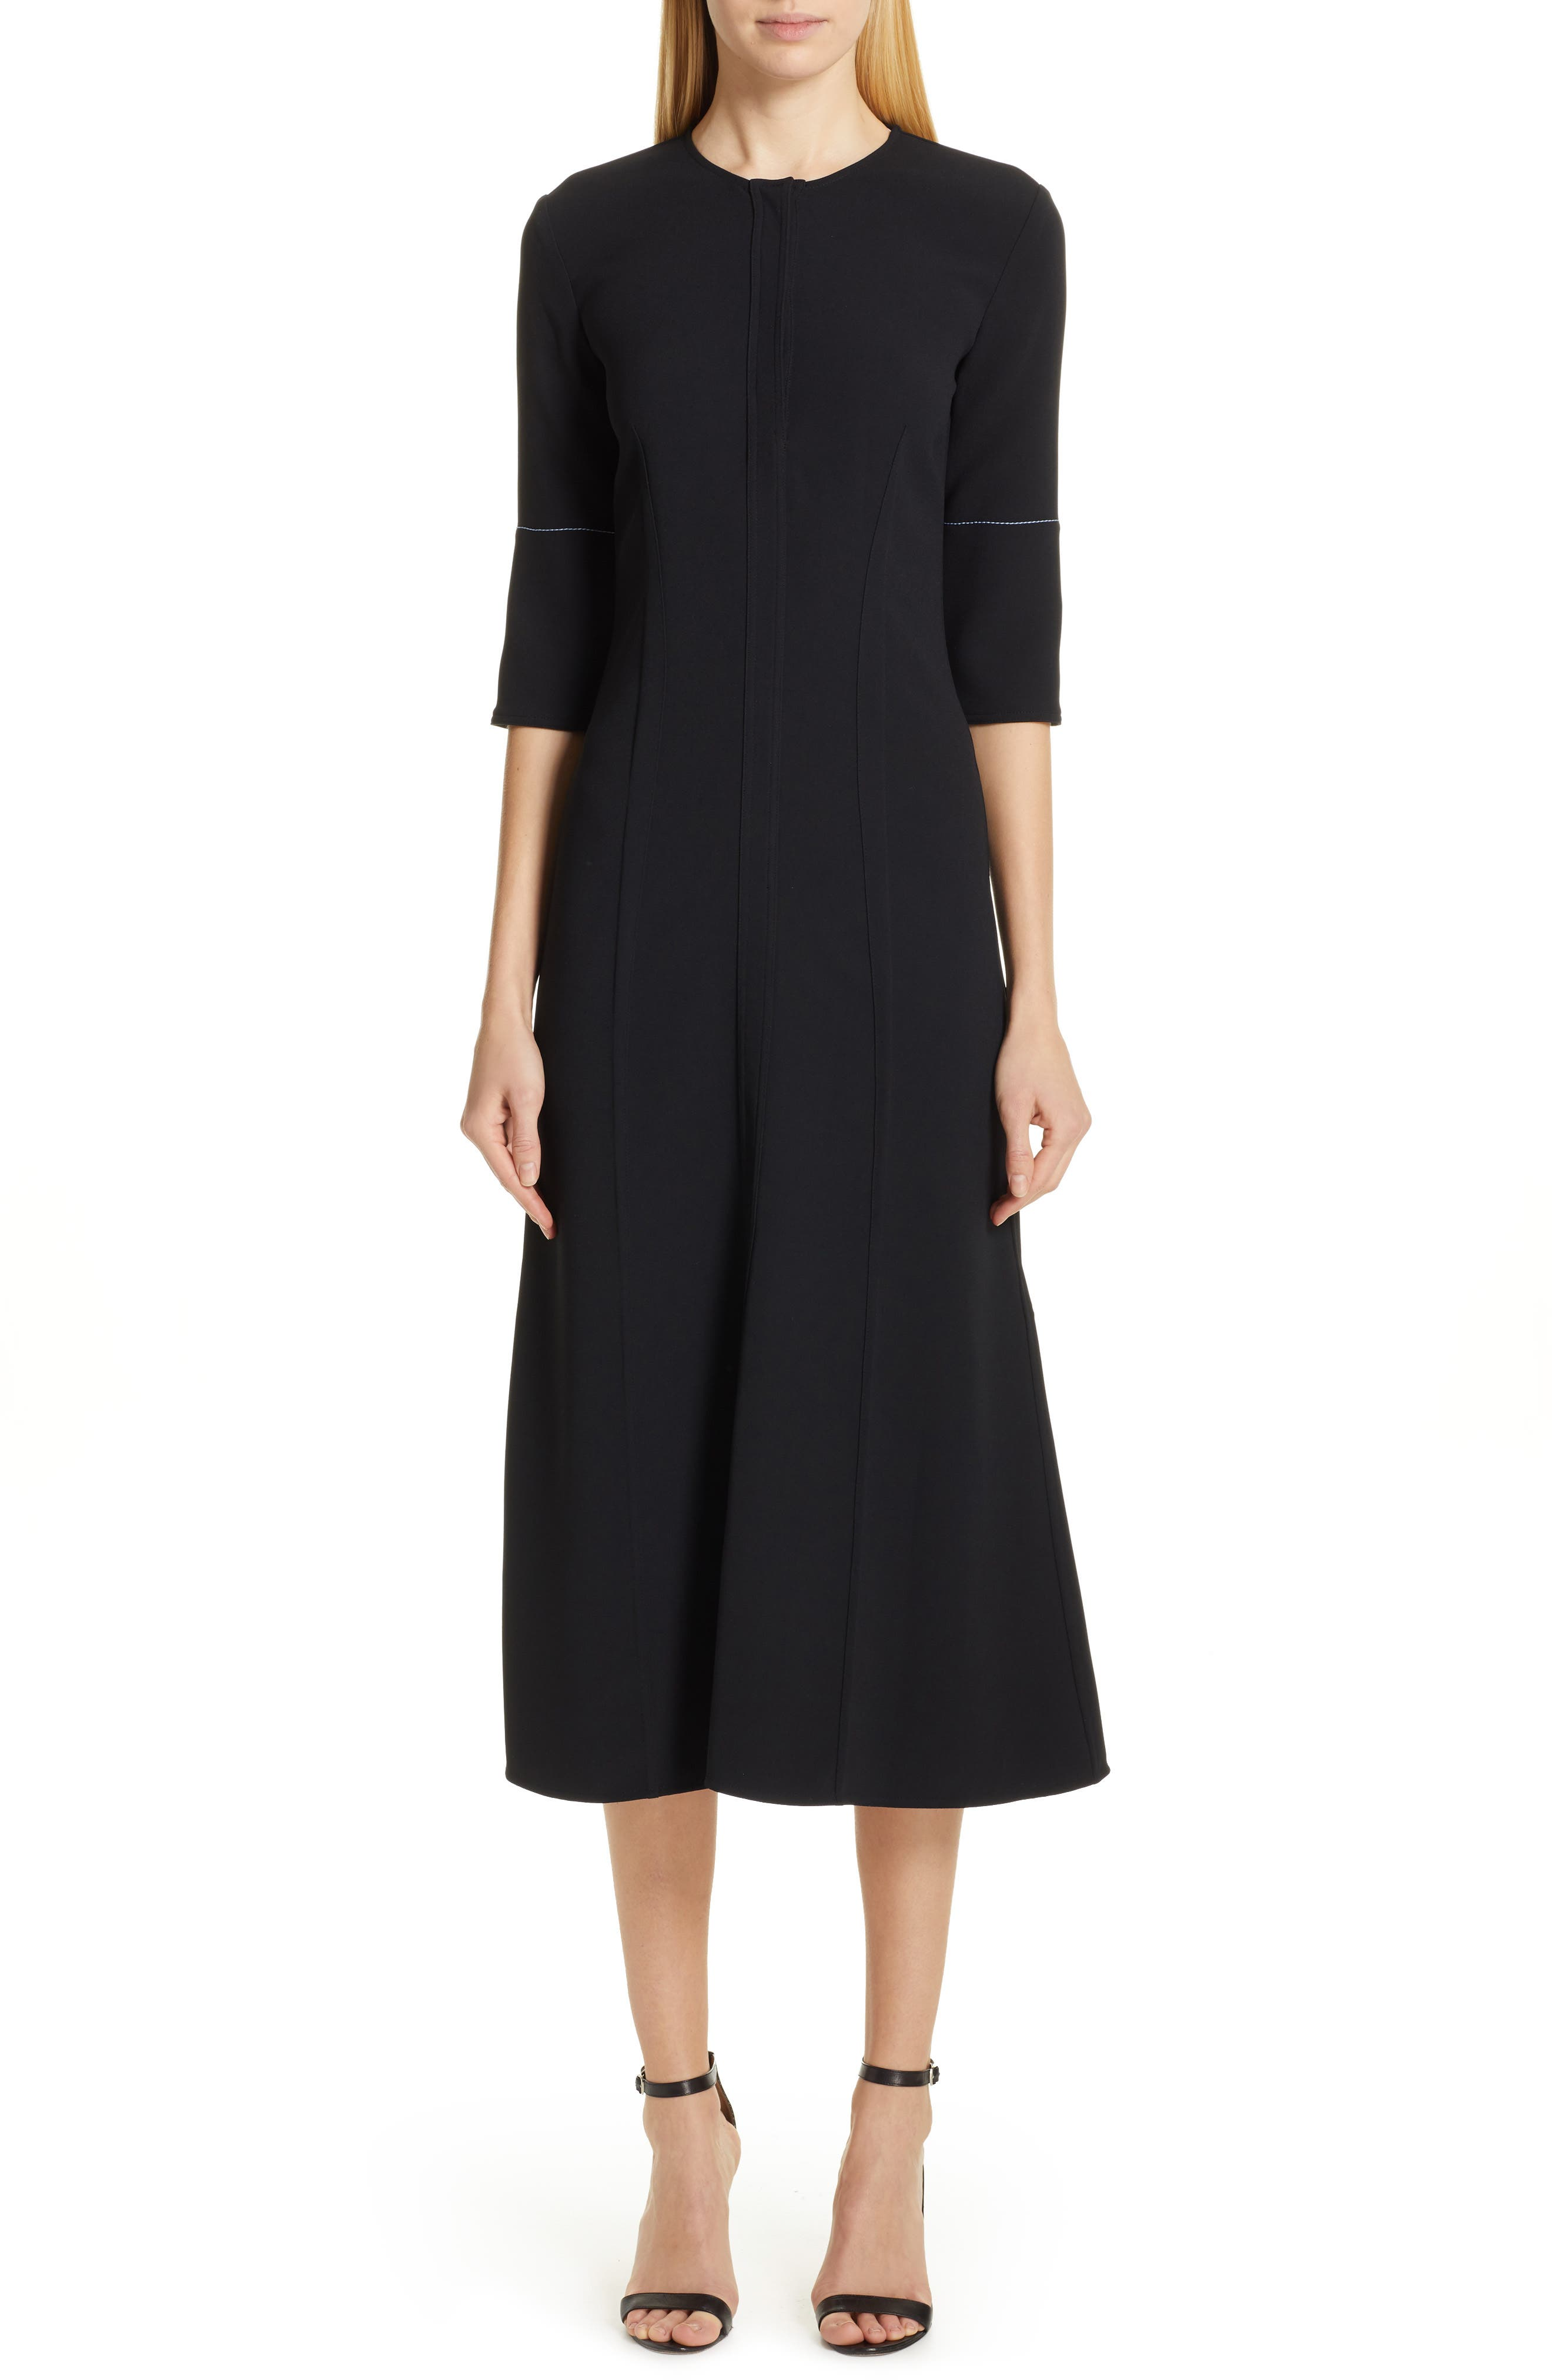 Victoria Beckham Contrast Stitch Crepe Dress, US / 12 UK - Black